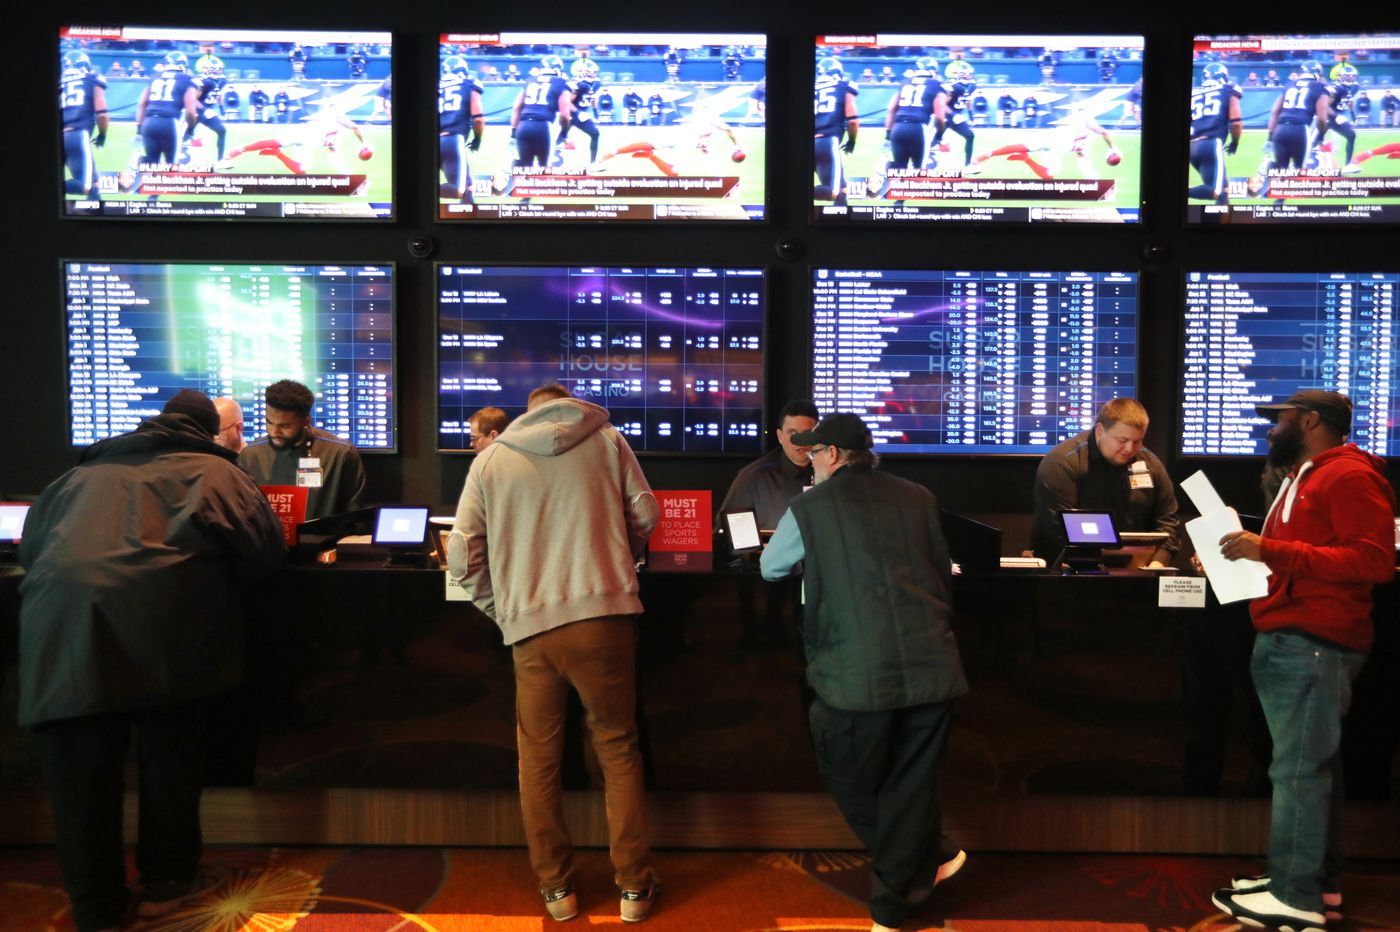 Pennsylvania's sports-betting handle doubles in January, but it still lags New Jersey by far